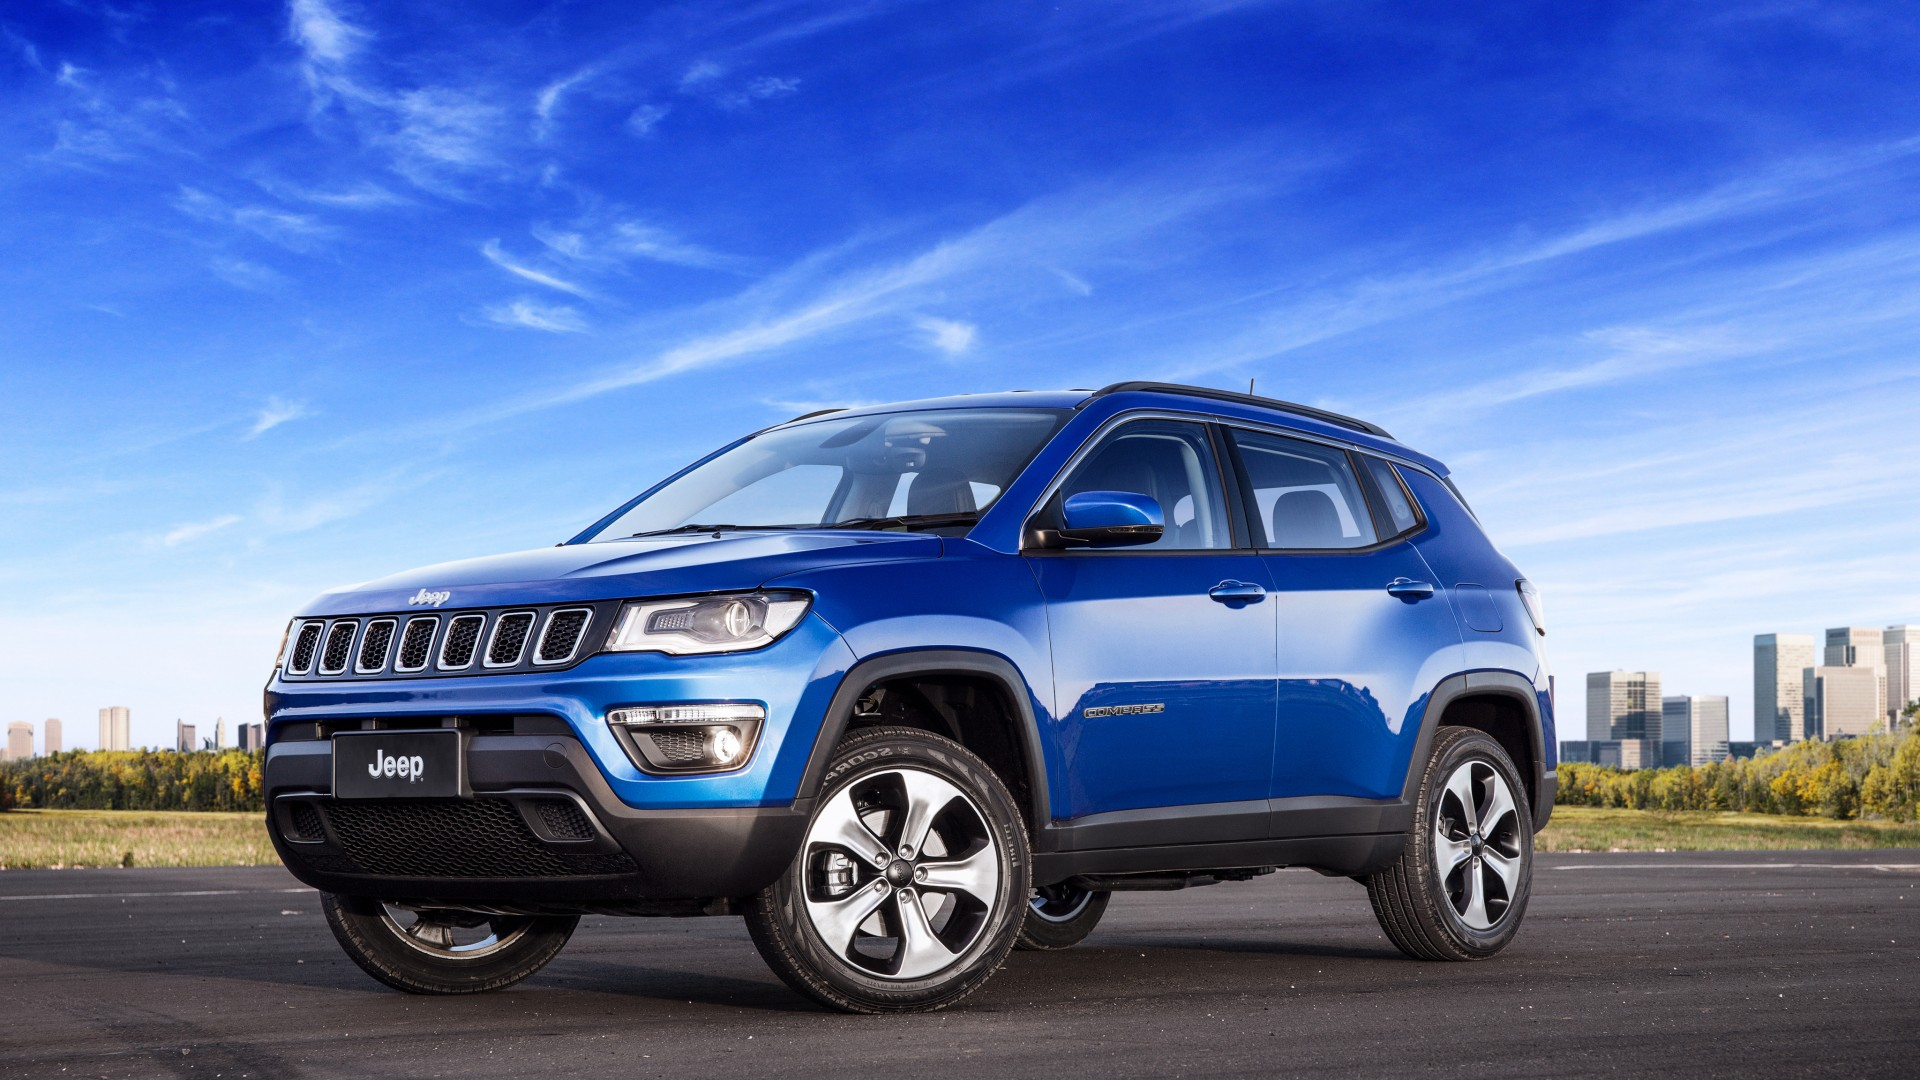 Bmw Luxury Cars Hd Wallpapers Wallpaper Jeep Compass Longitude Suv Blue Cars Amp Bikes